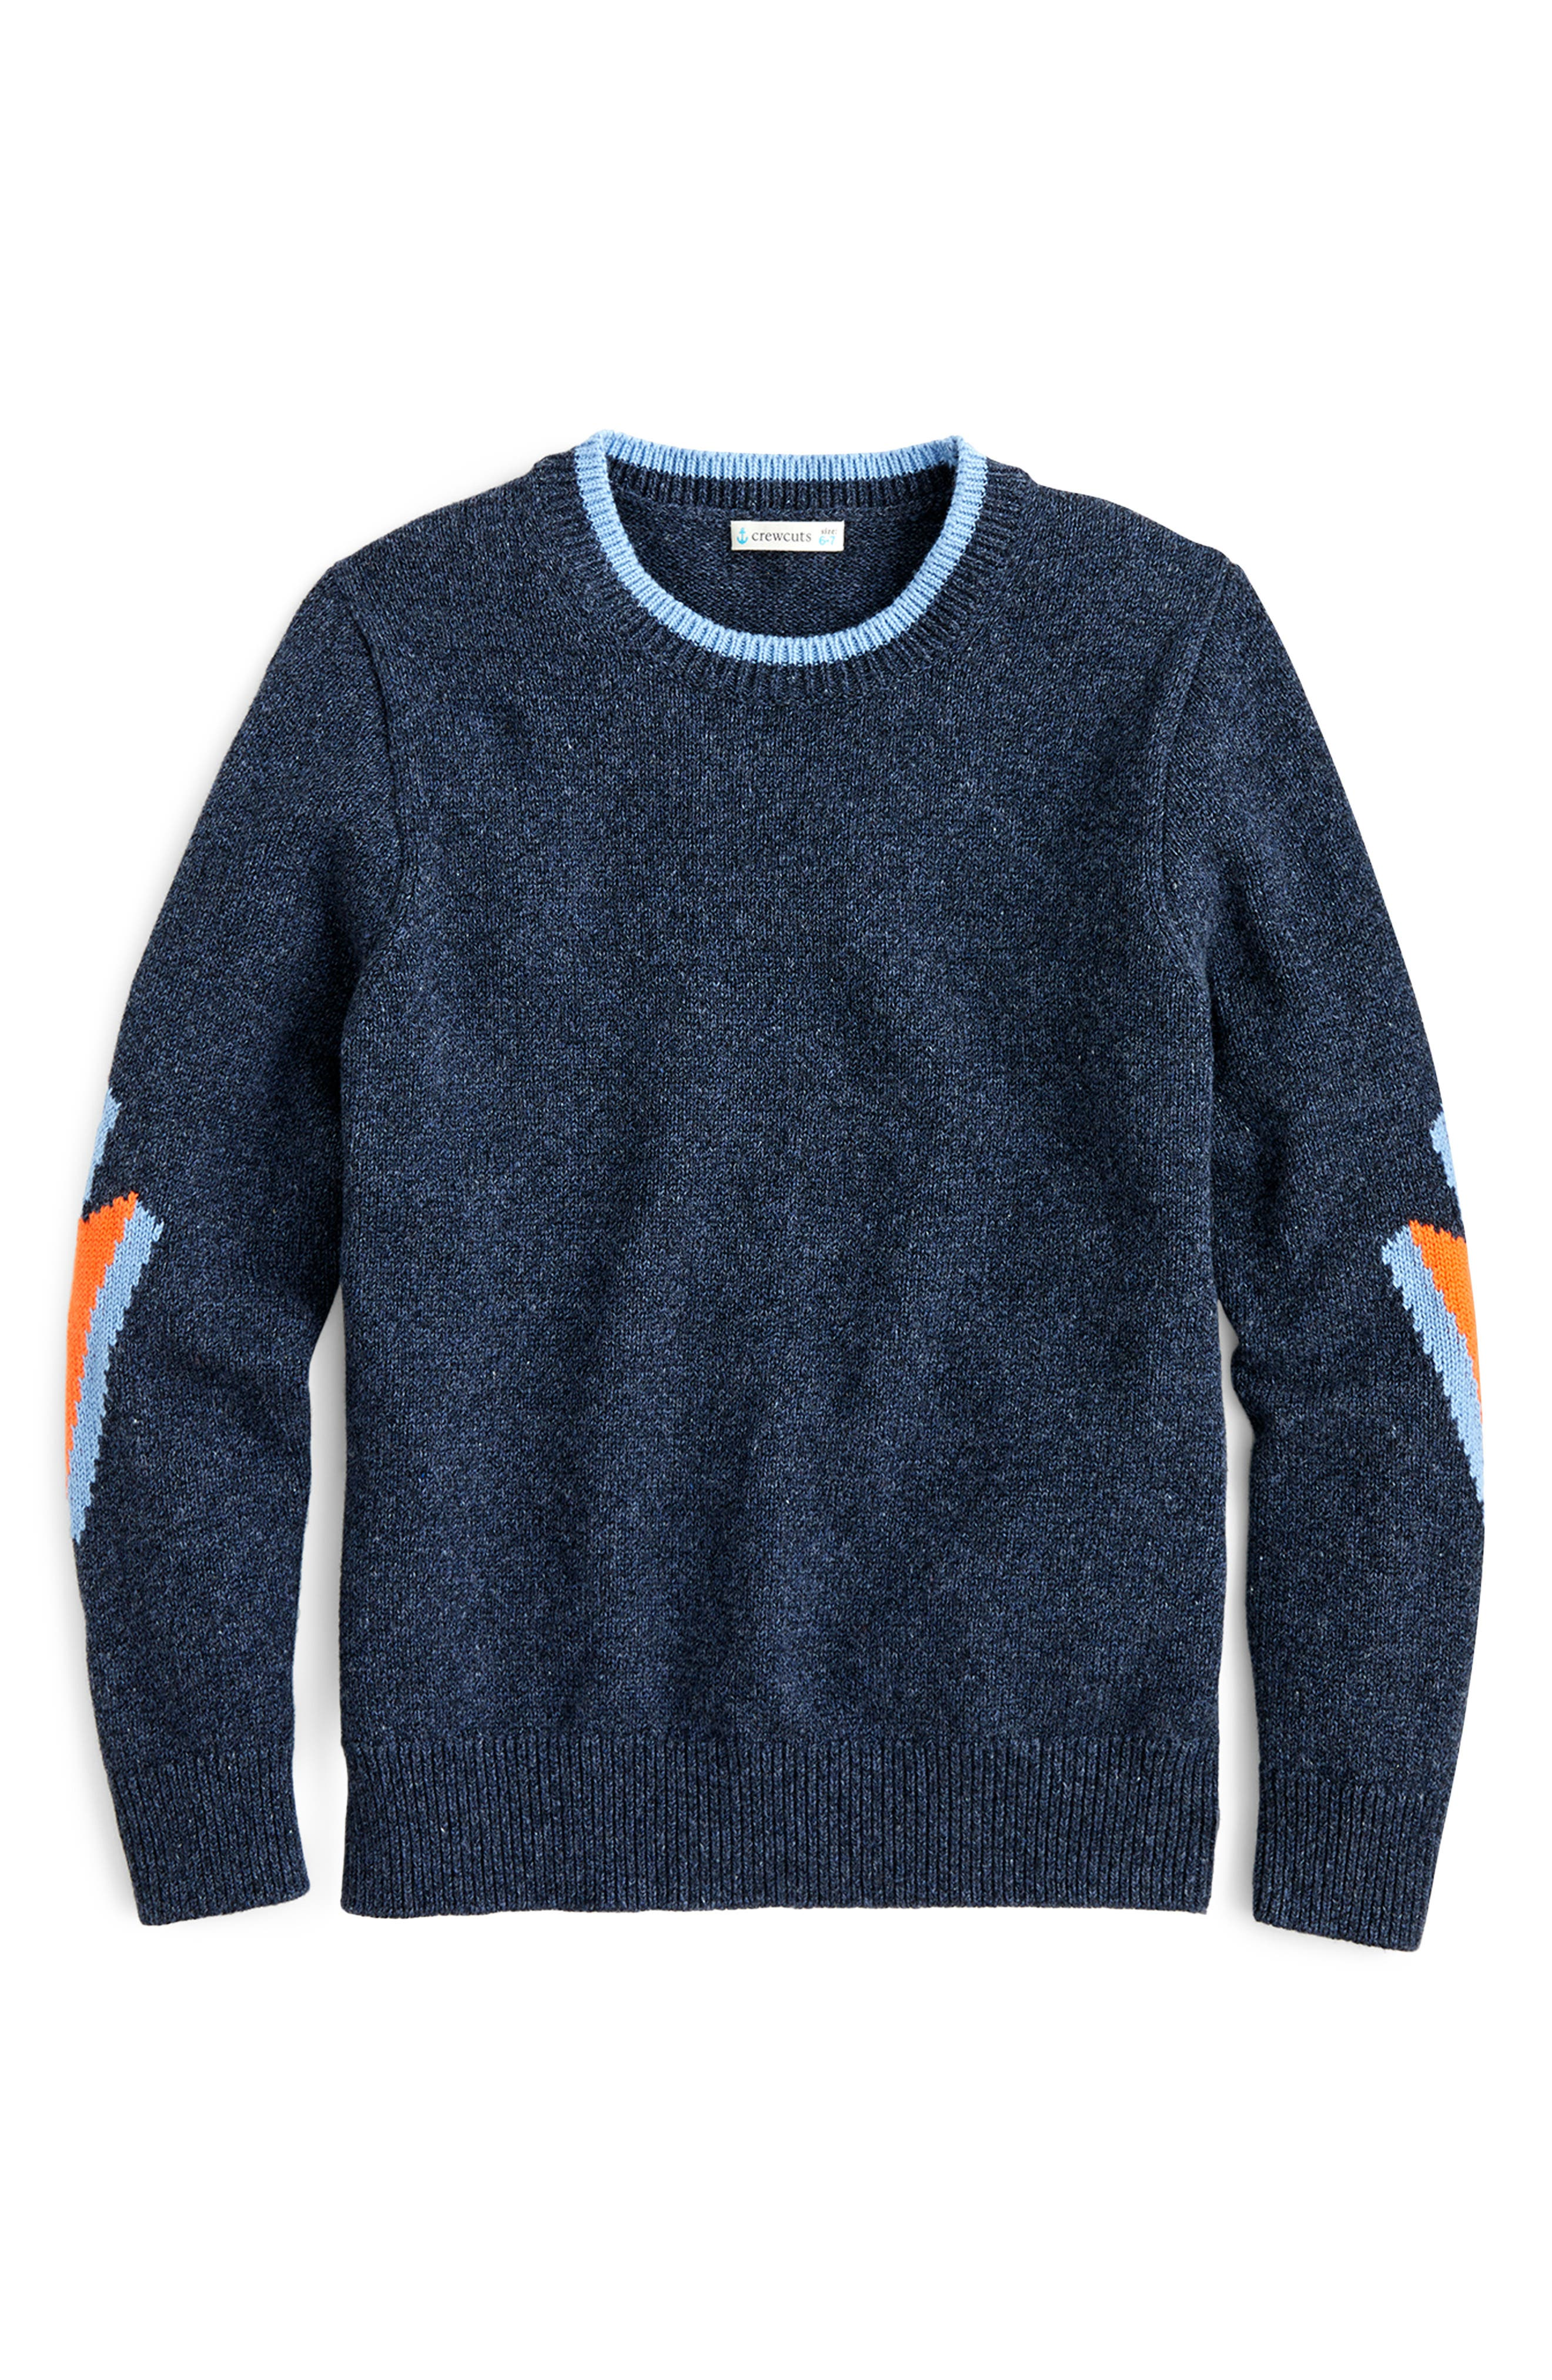 Boys Crewcuts By Jcrew Lightning Bolt Cotton Crewneck Sweater Size 16  Blue